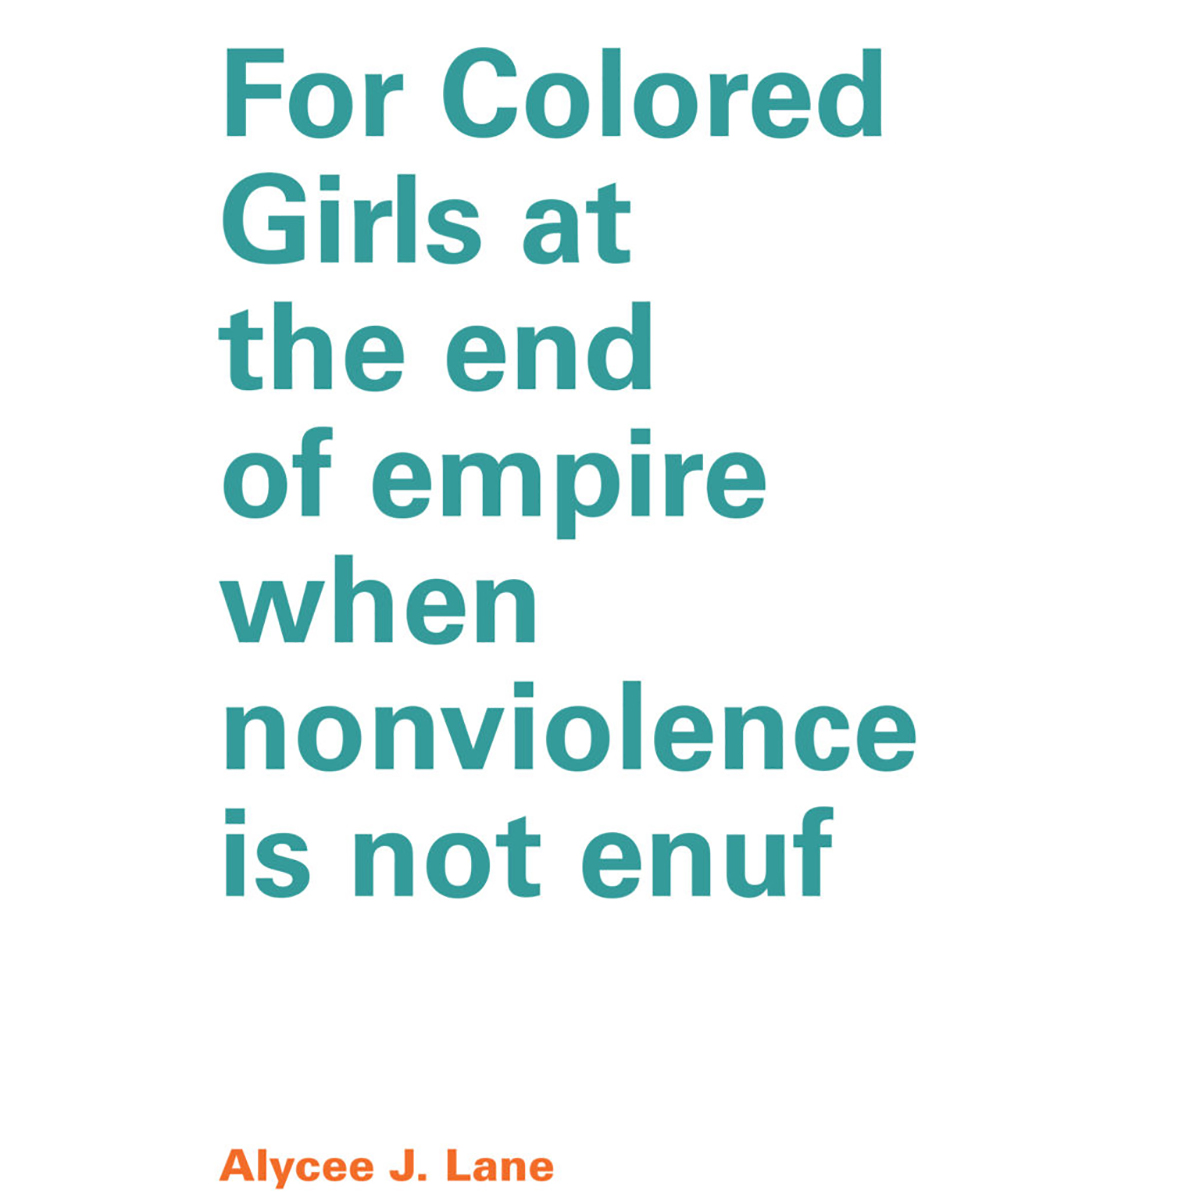 For Colored Girls at the end of empire when nonviolence is not enuf Now Available as an Ebook